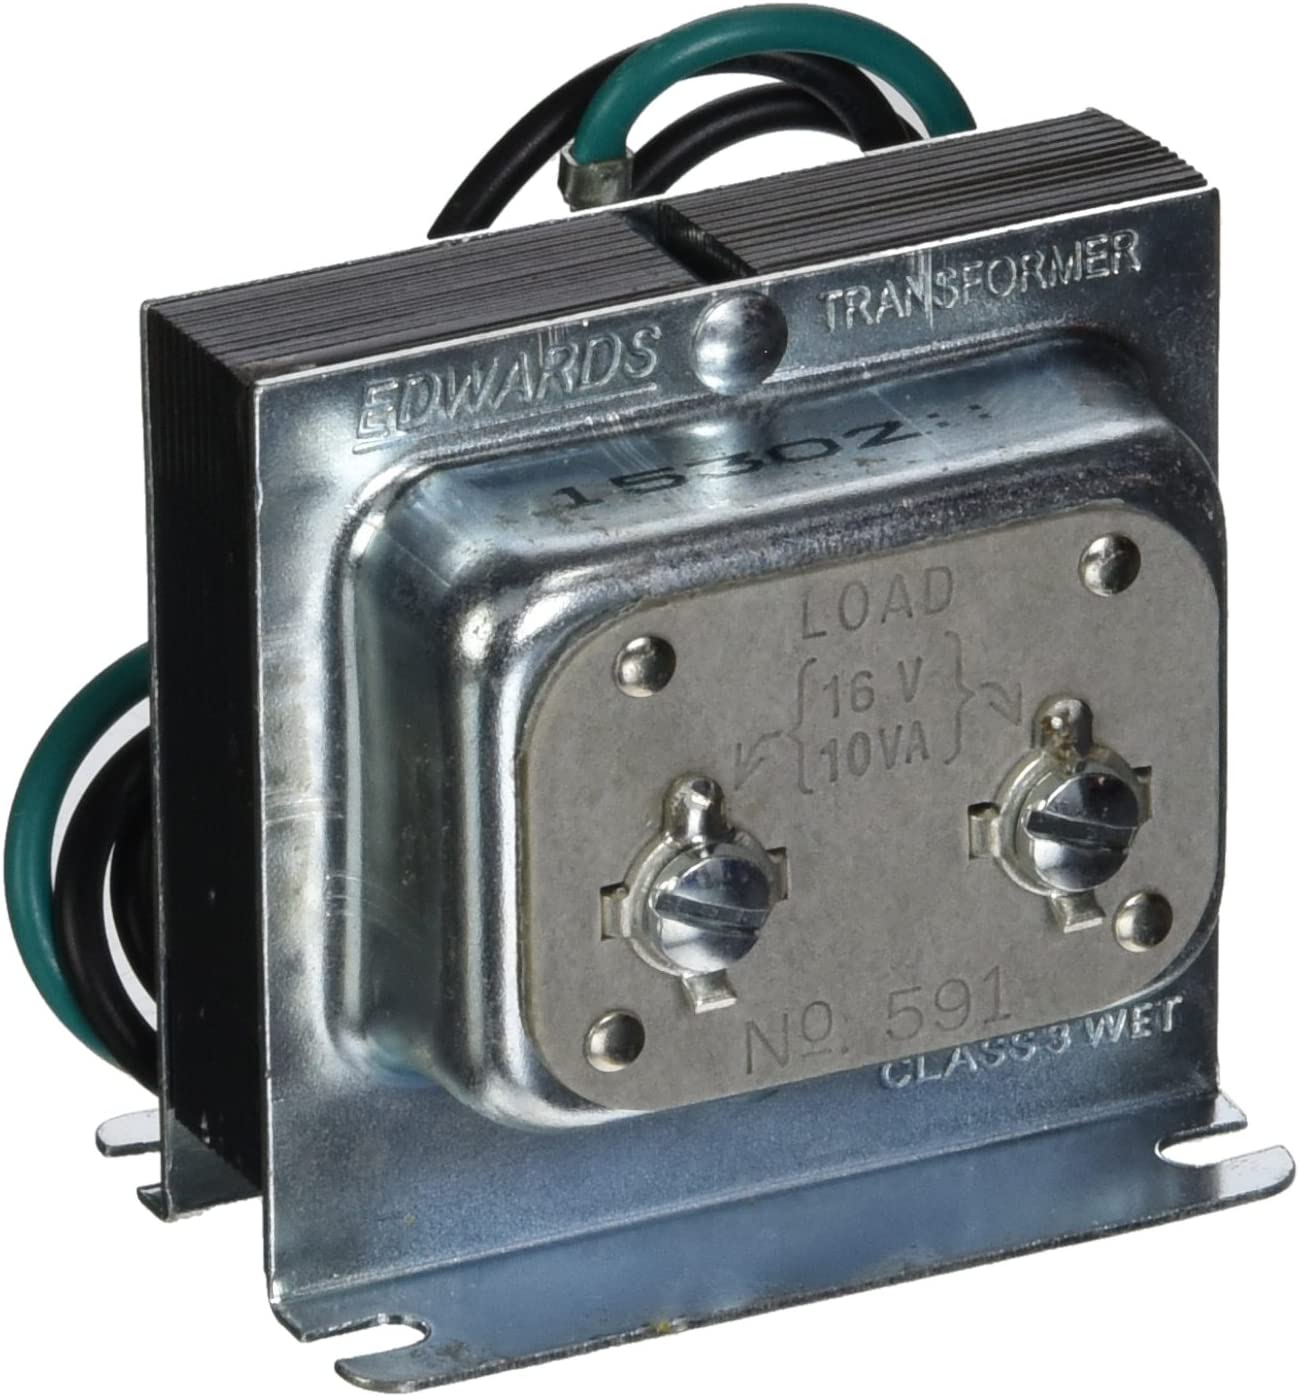 lowest price Edwards-Signaling 591 Minneapolis Mall 120V AC 16V Transformer Secondary Primary